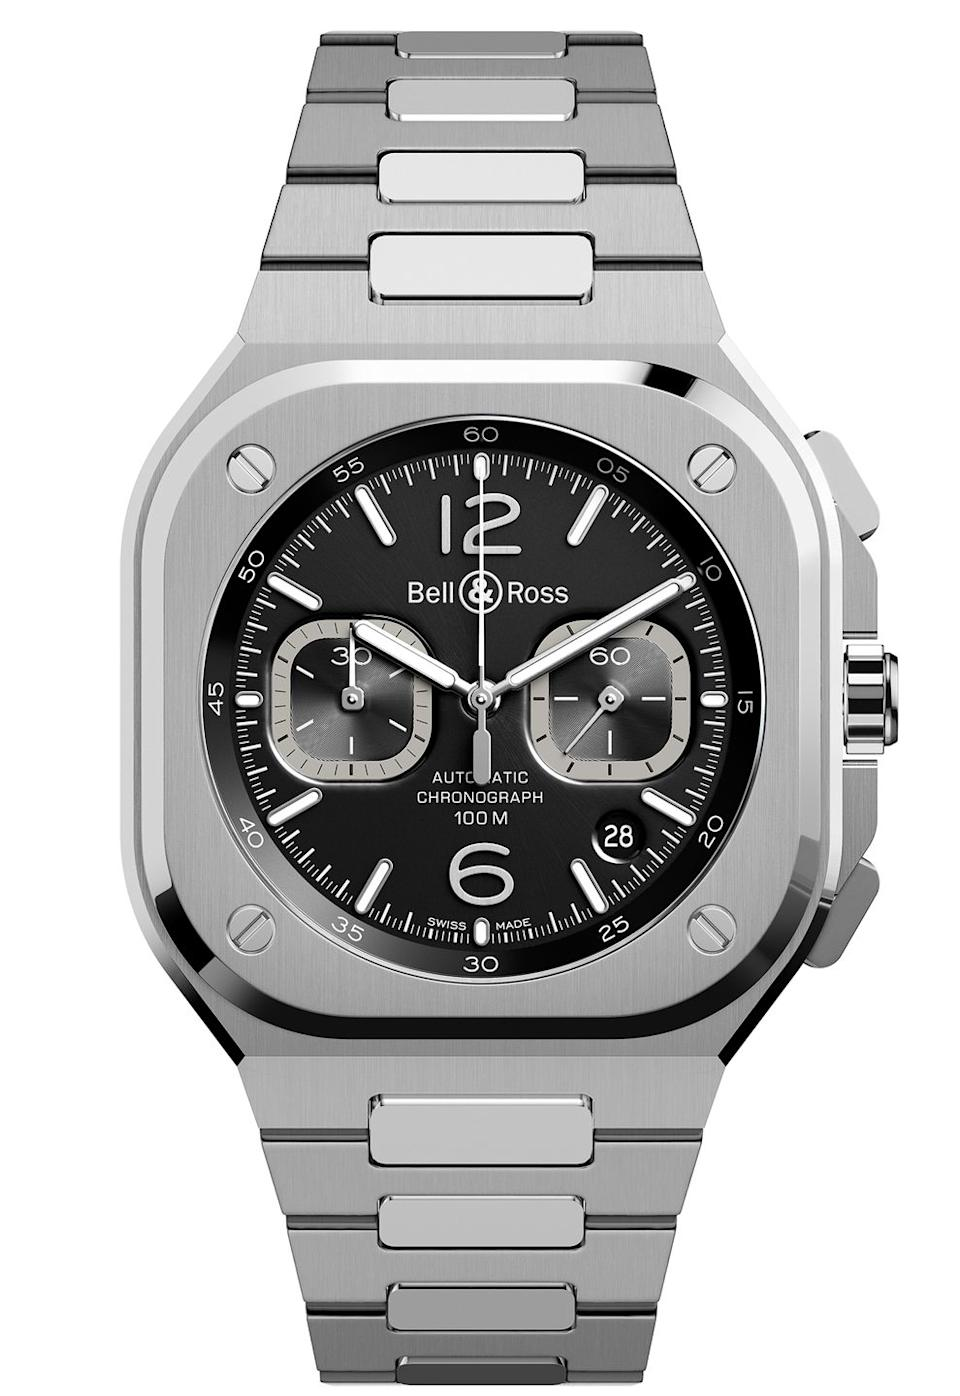 Photo credit: Courtesy Bell&Ross